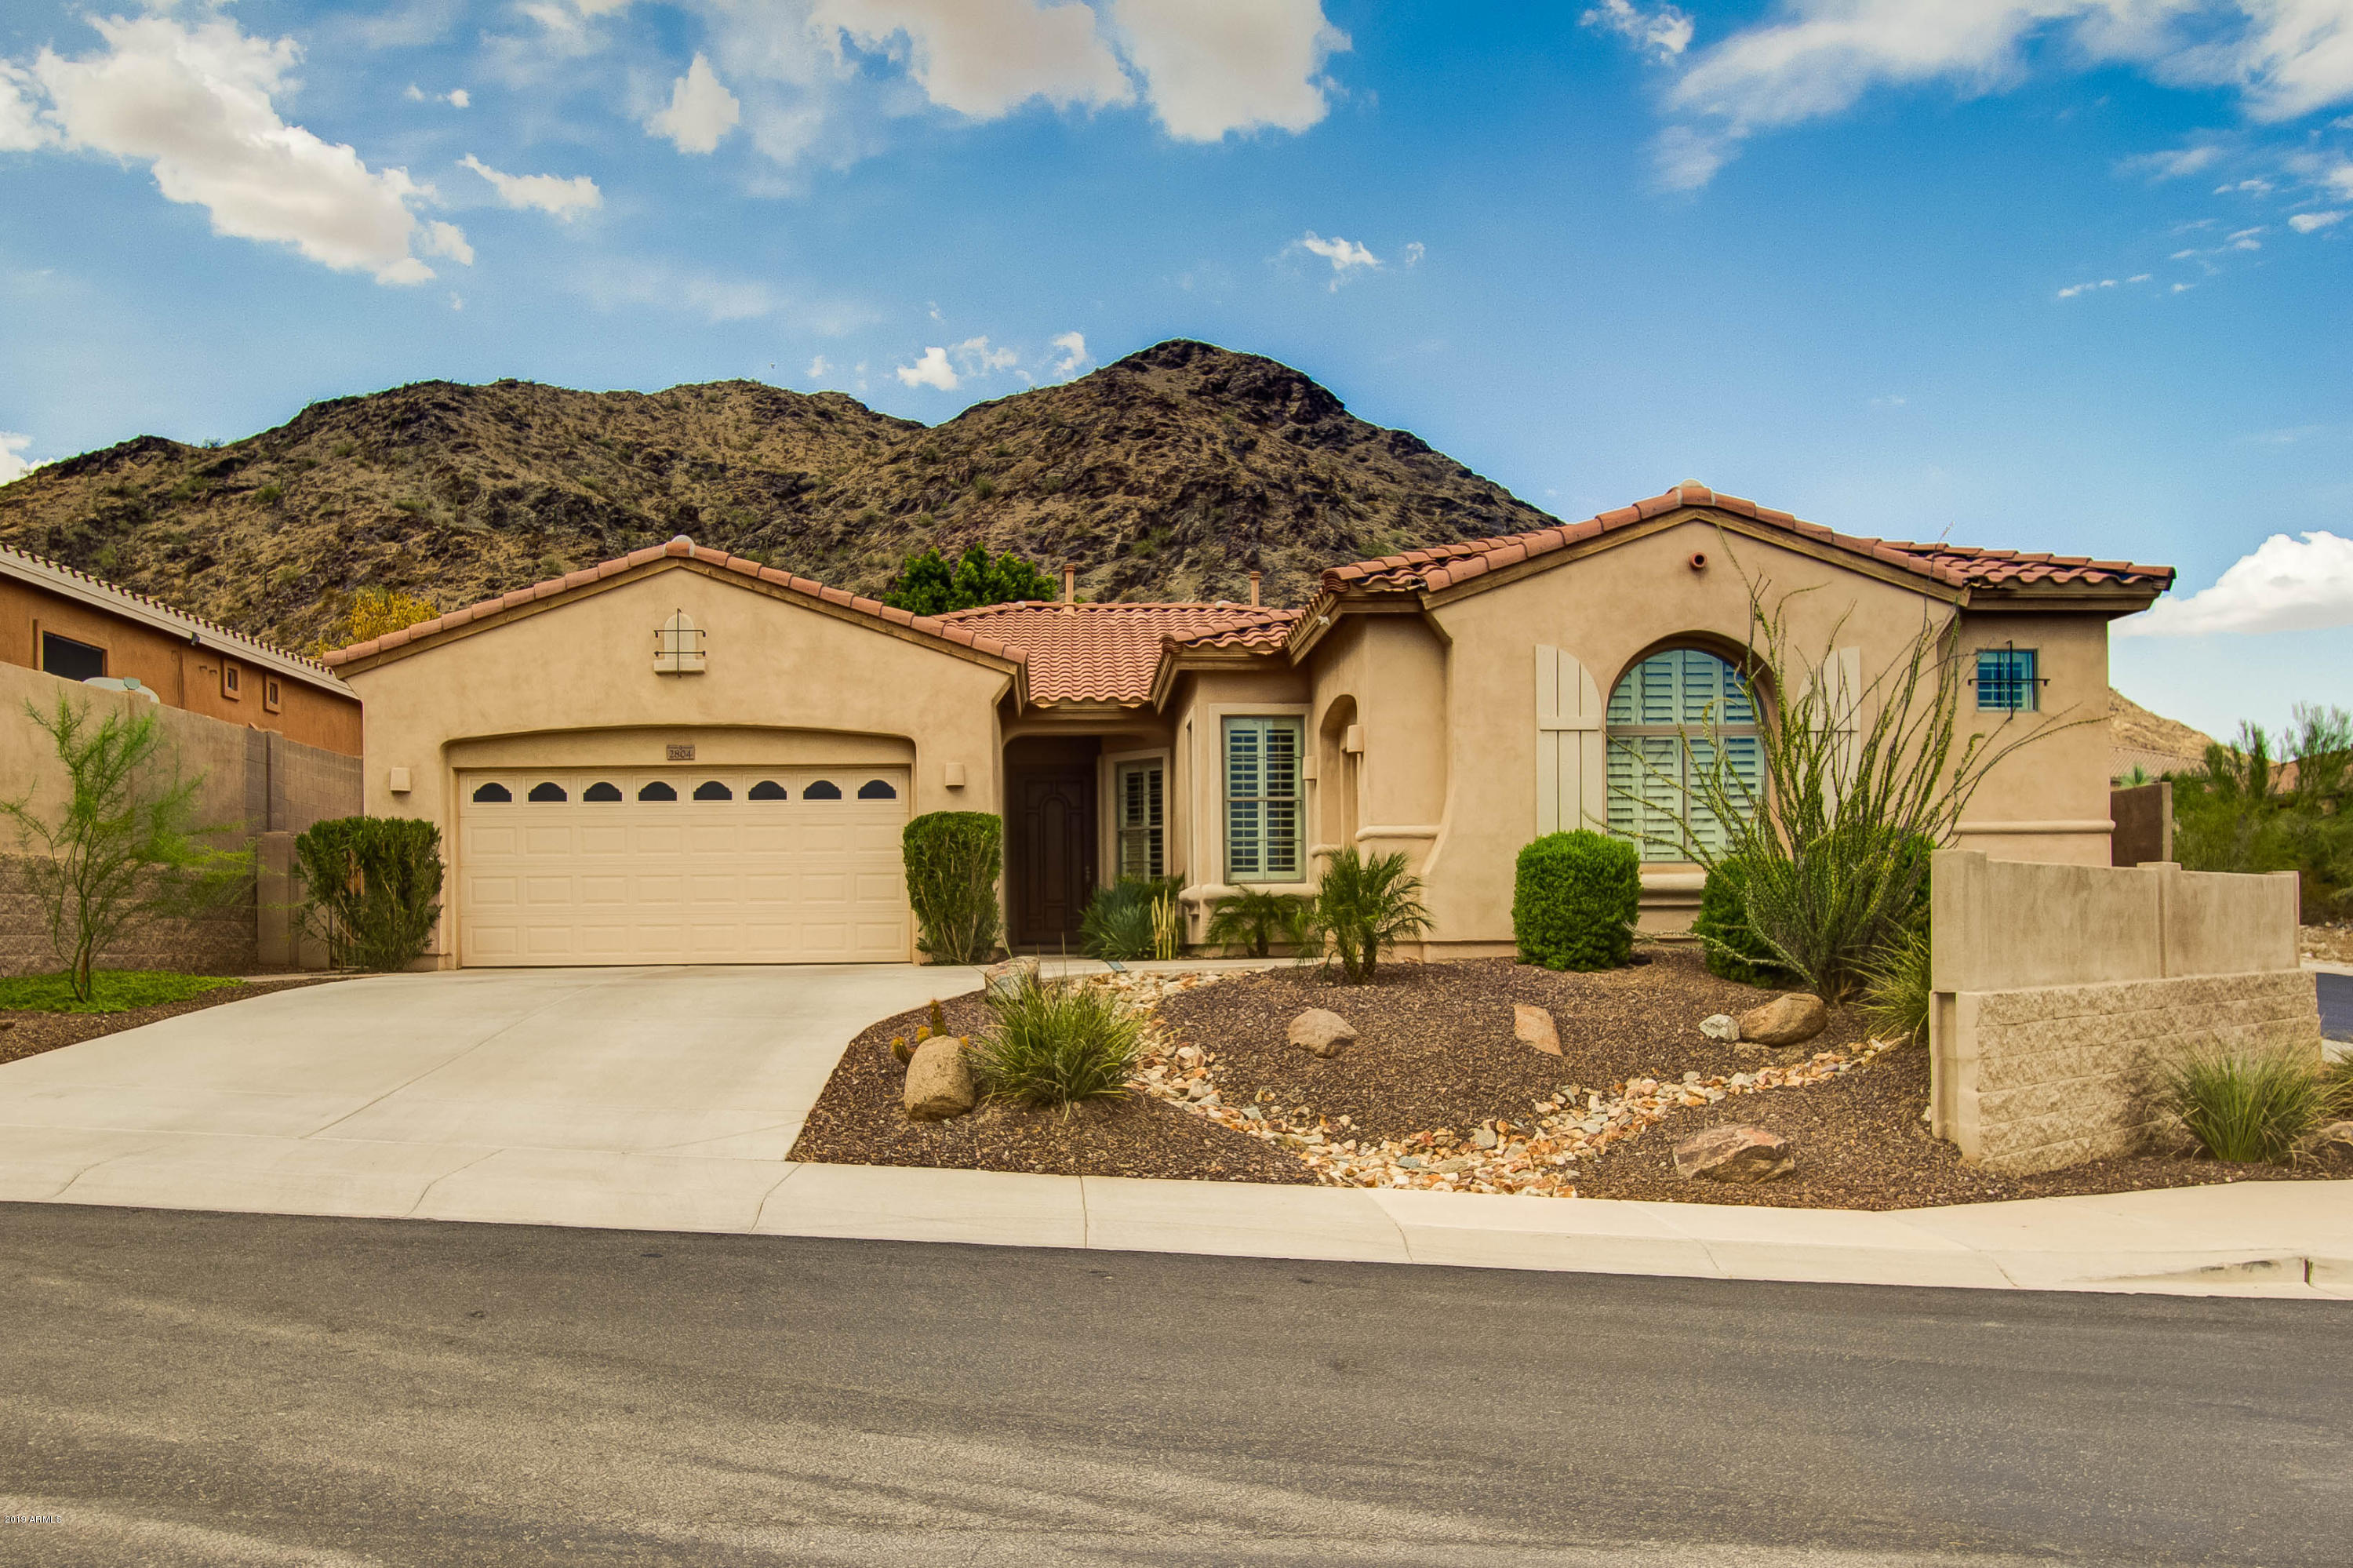 Photo of 2804 W SILVERWOOD WASH Drive, Phoenix, AZ 85045